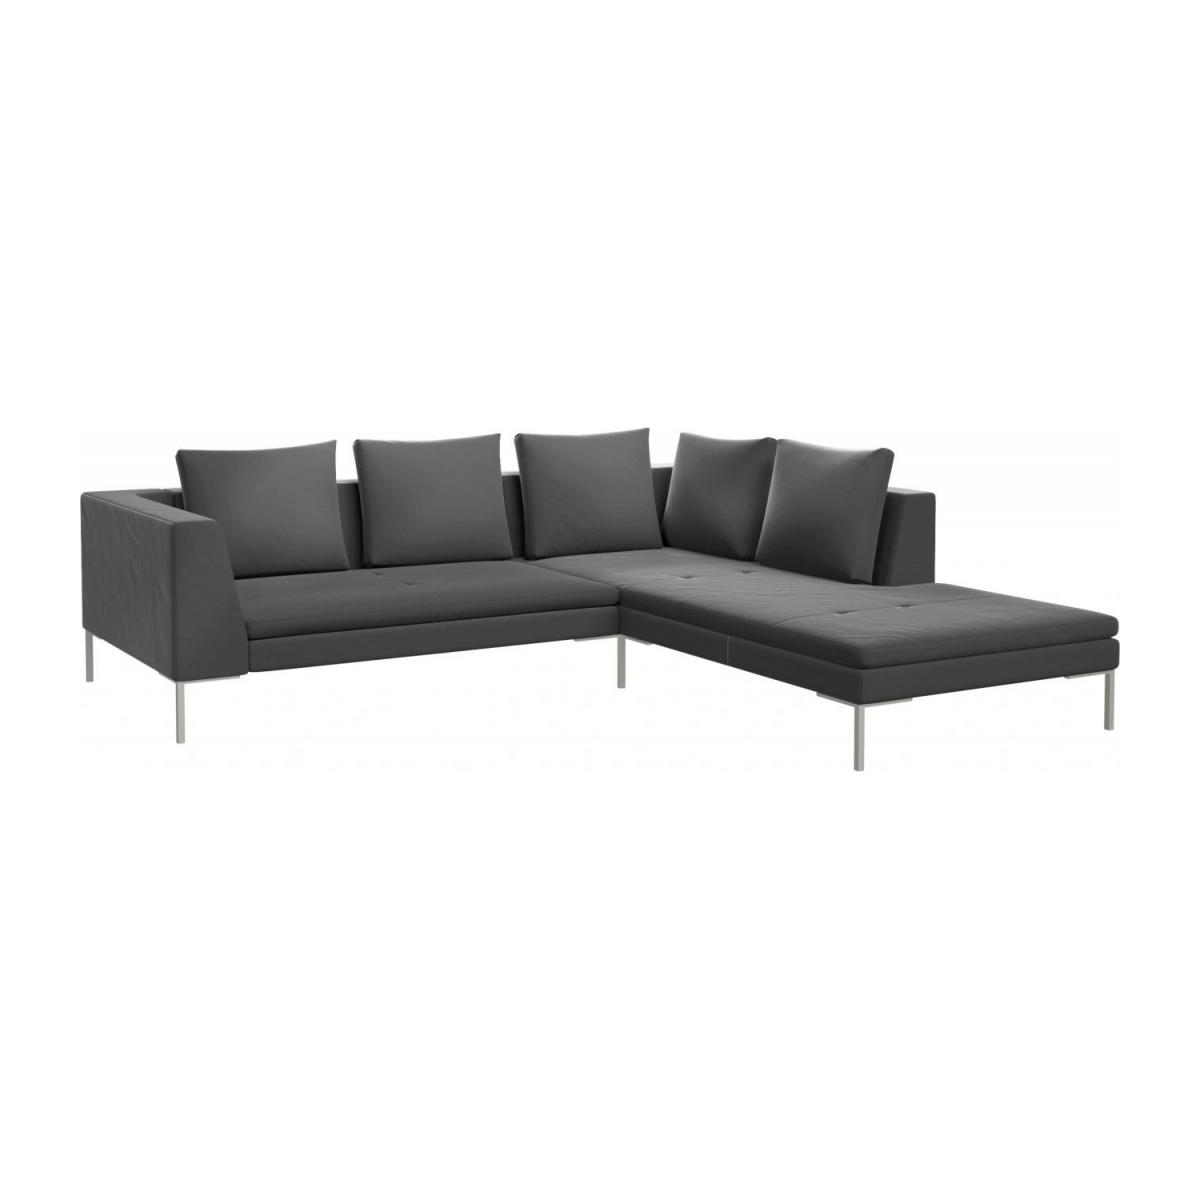 duck feather corner sofa leather set l shaped montino 2 seater with chaise longue on the right in super velvet fabric silver grey